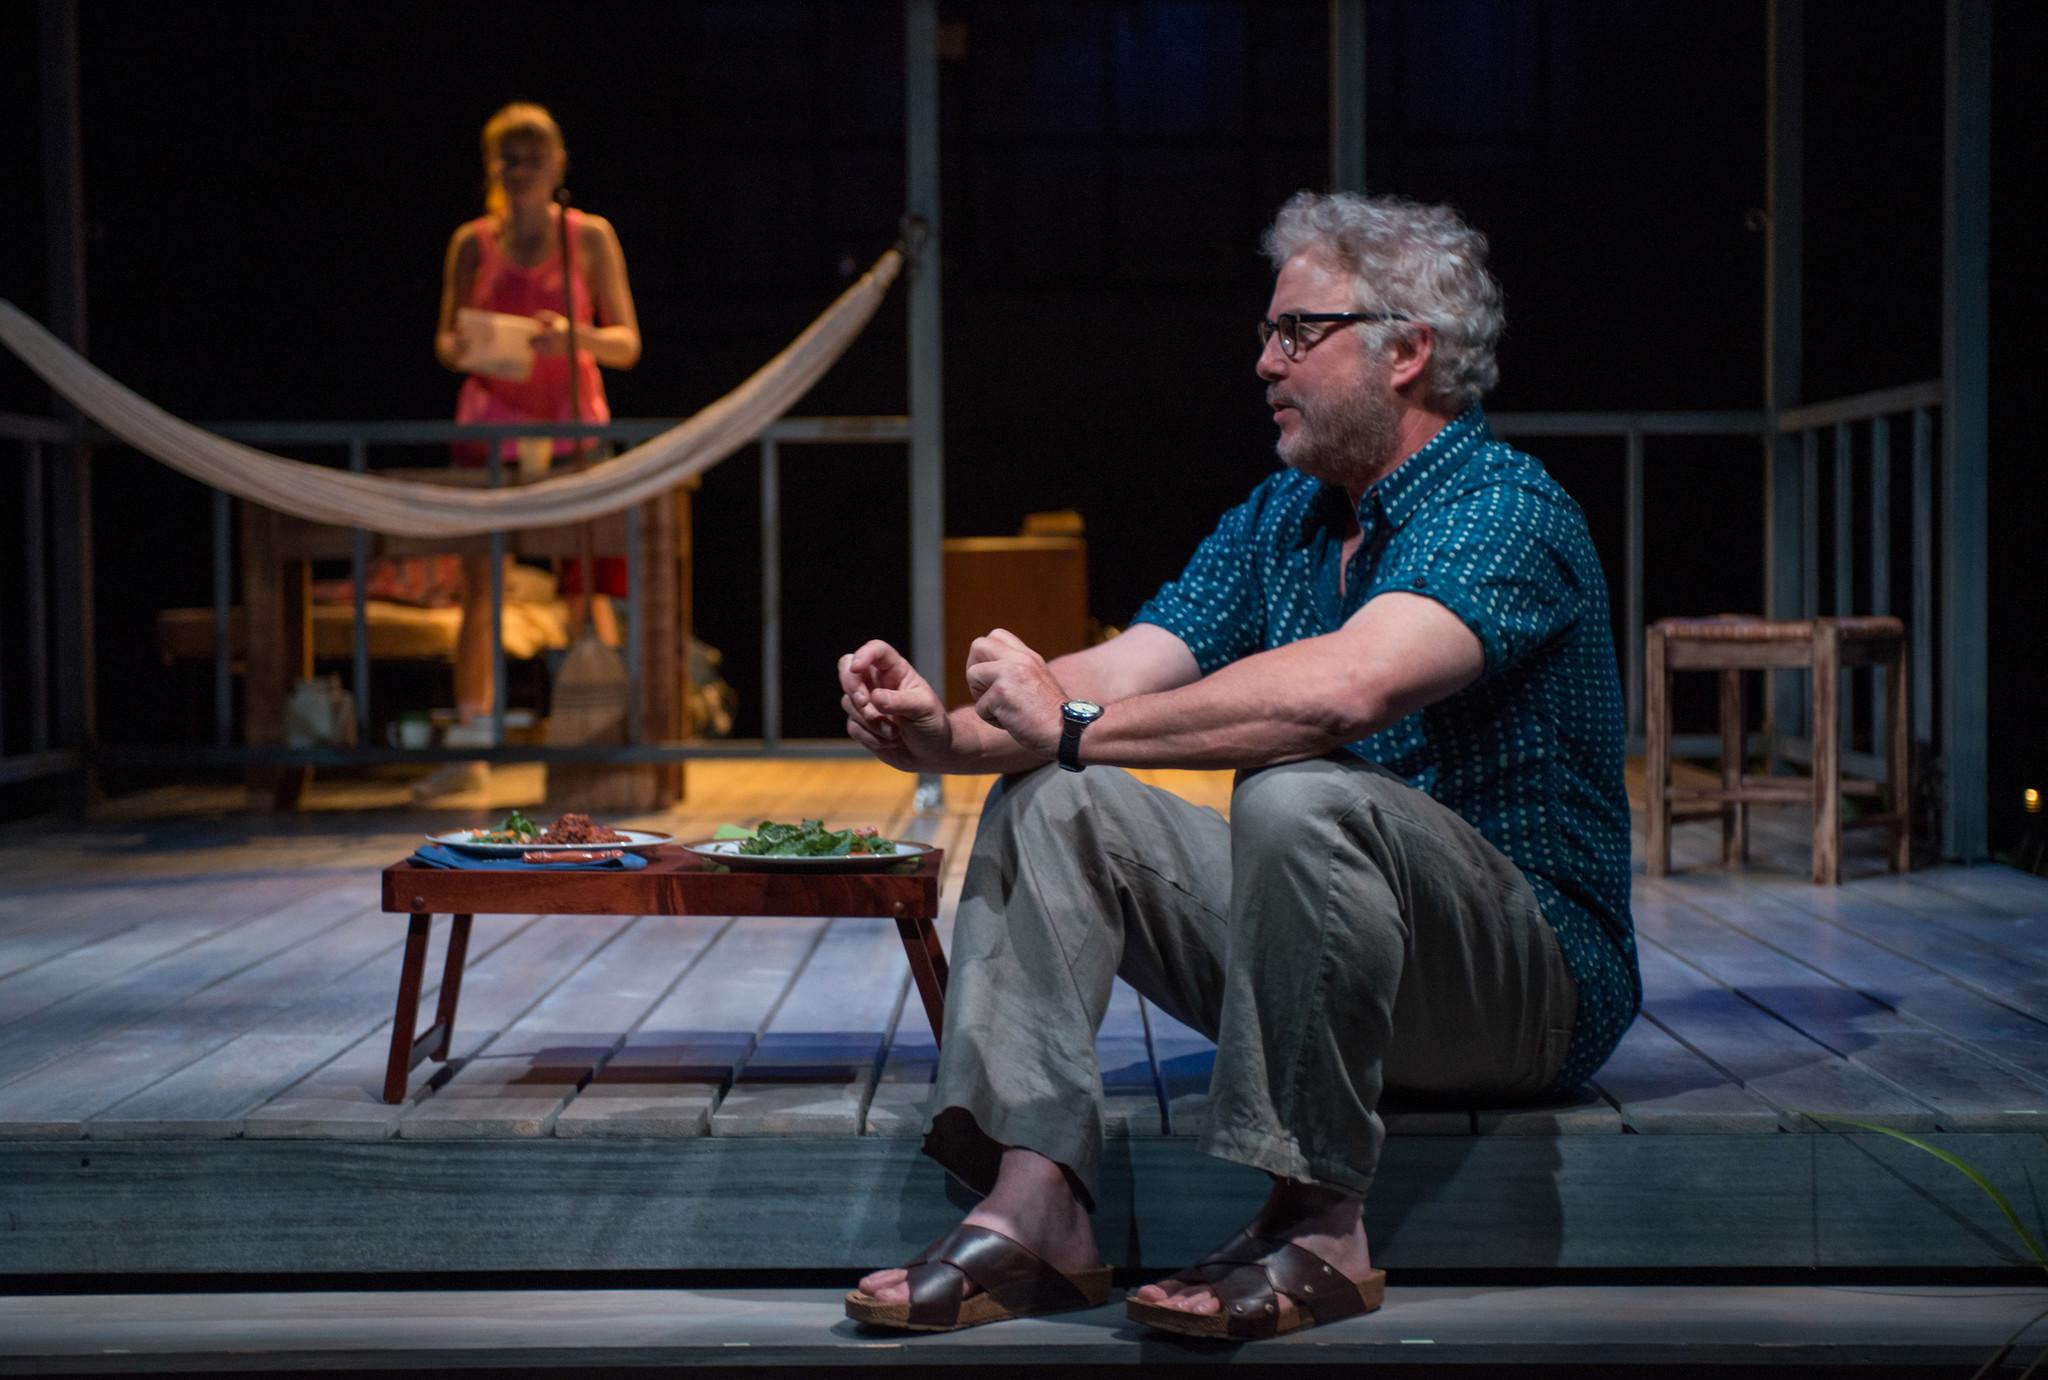 ct-william-petersen-steppenwolf-minutes-20170804.jpg